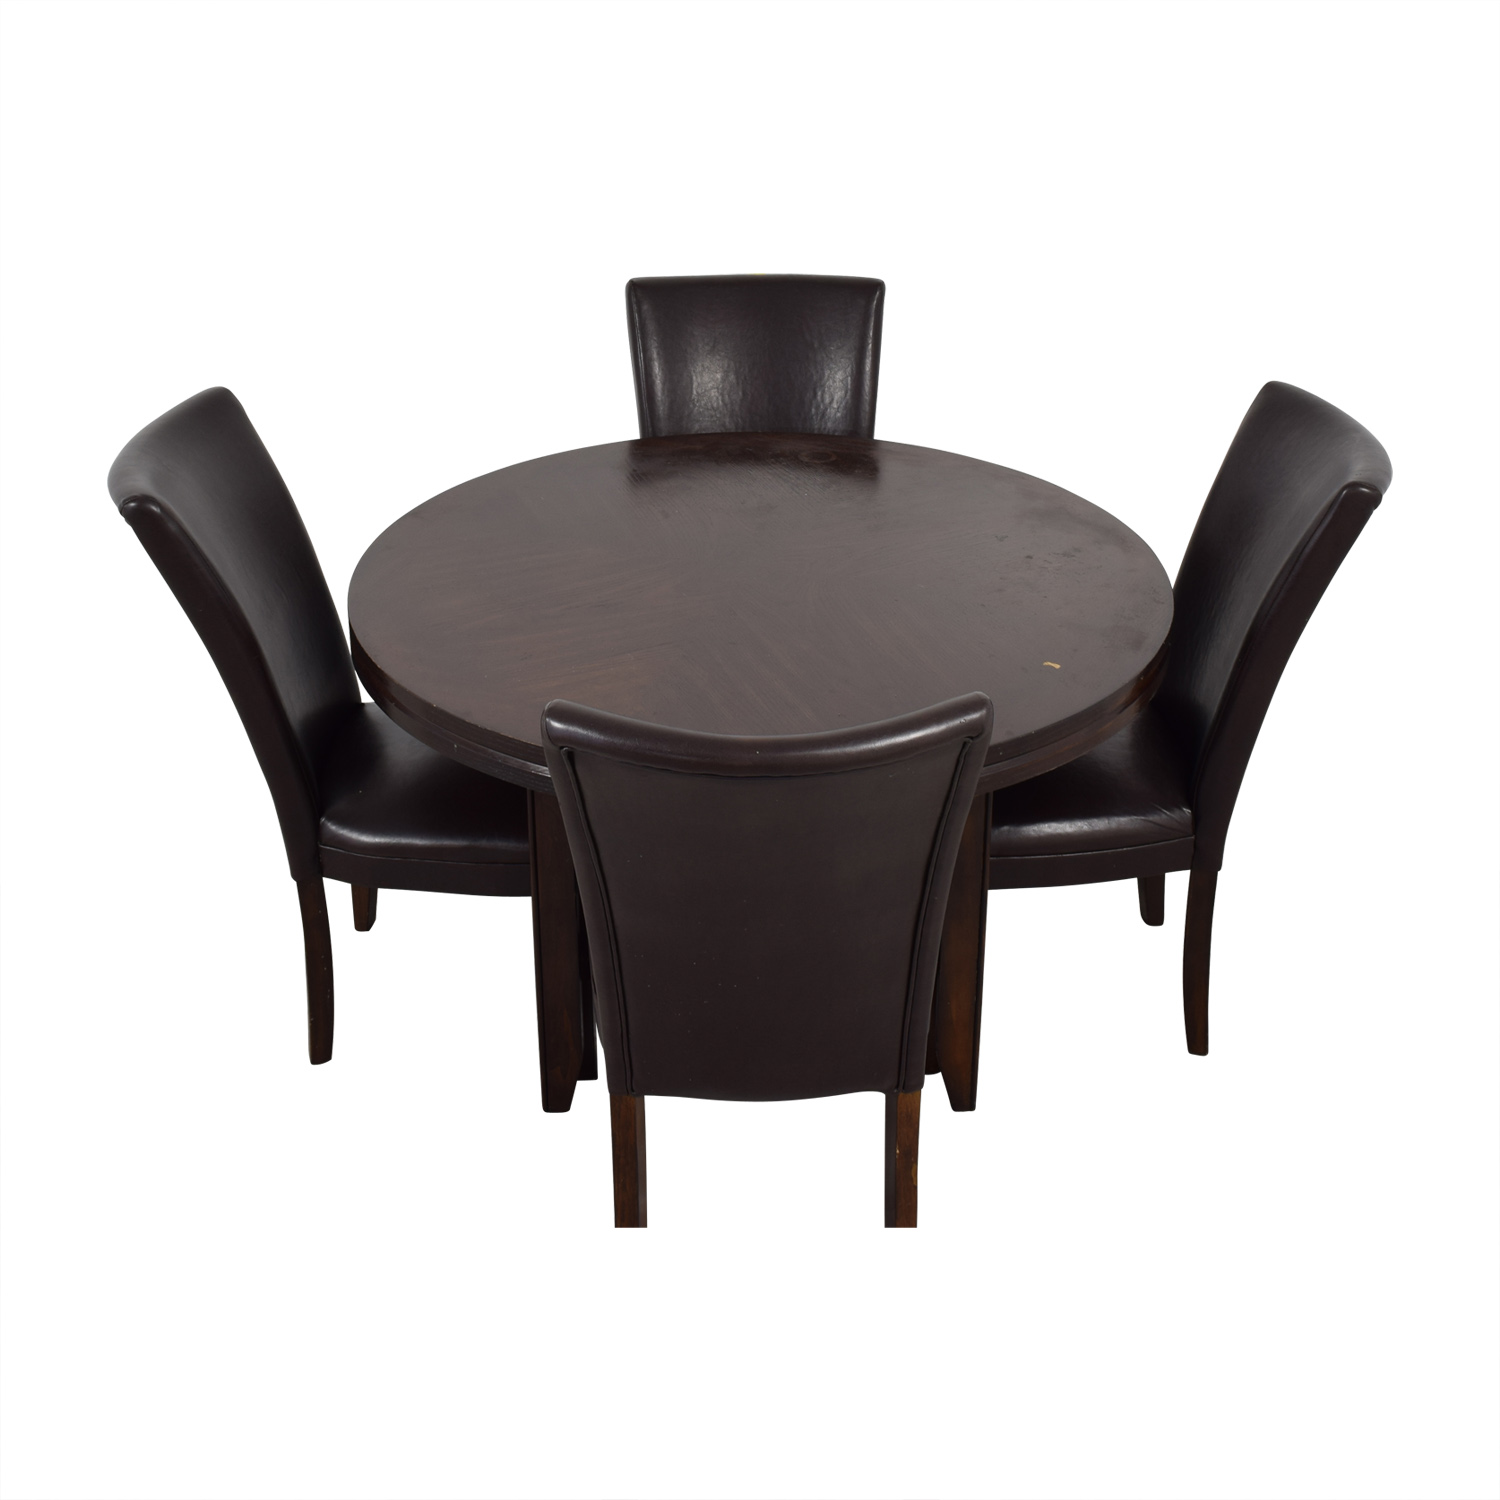 buy Round Wood Dining Table with Black Leather Chairs